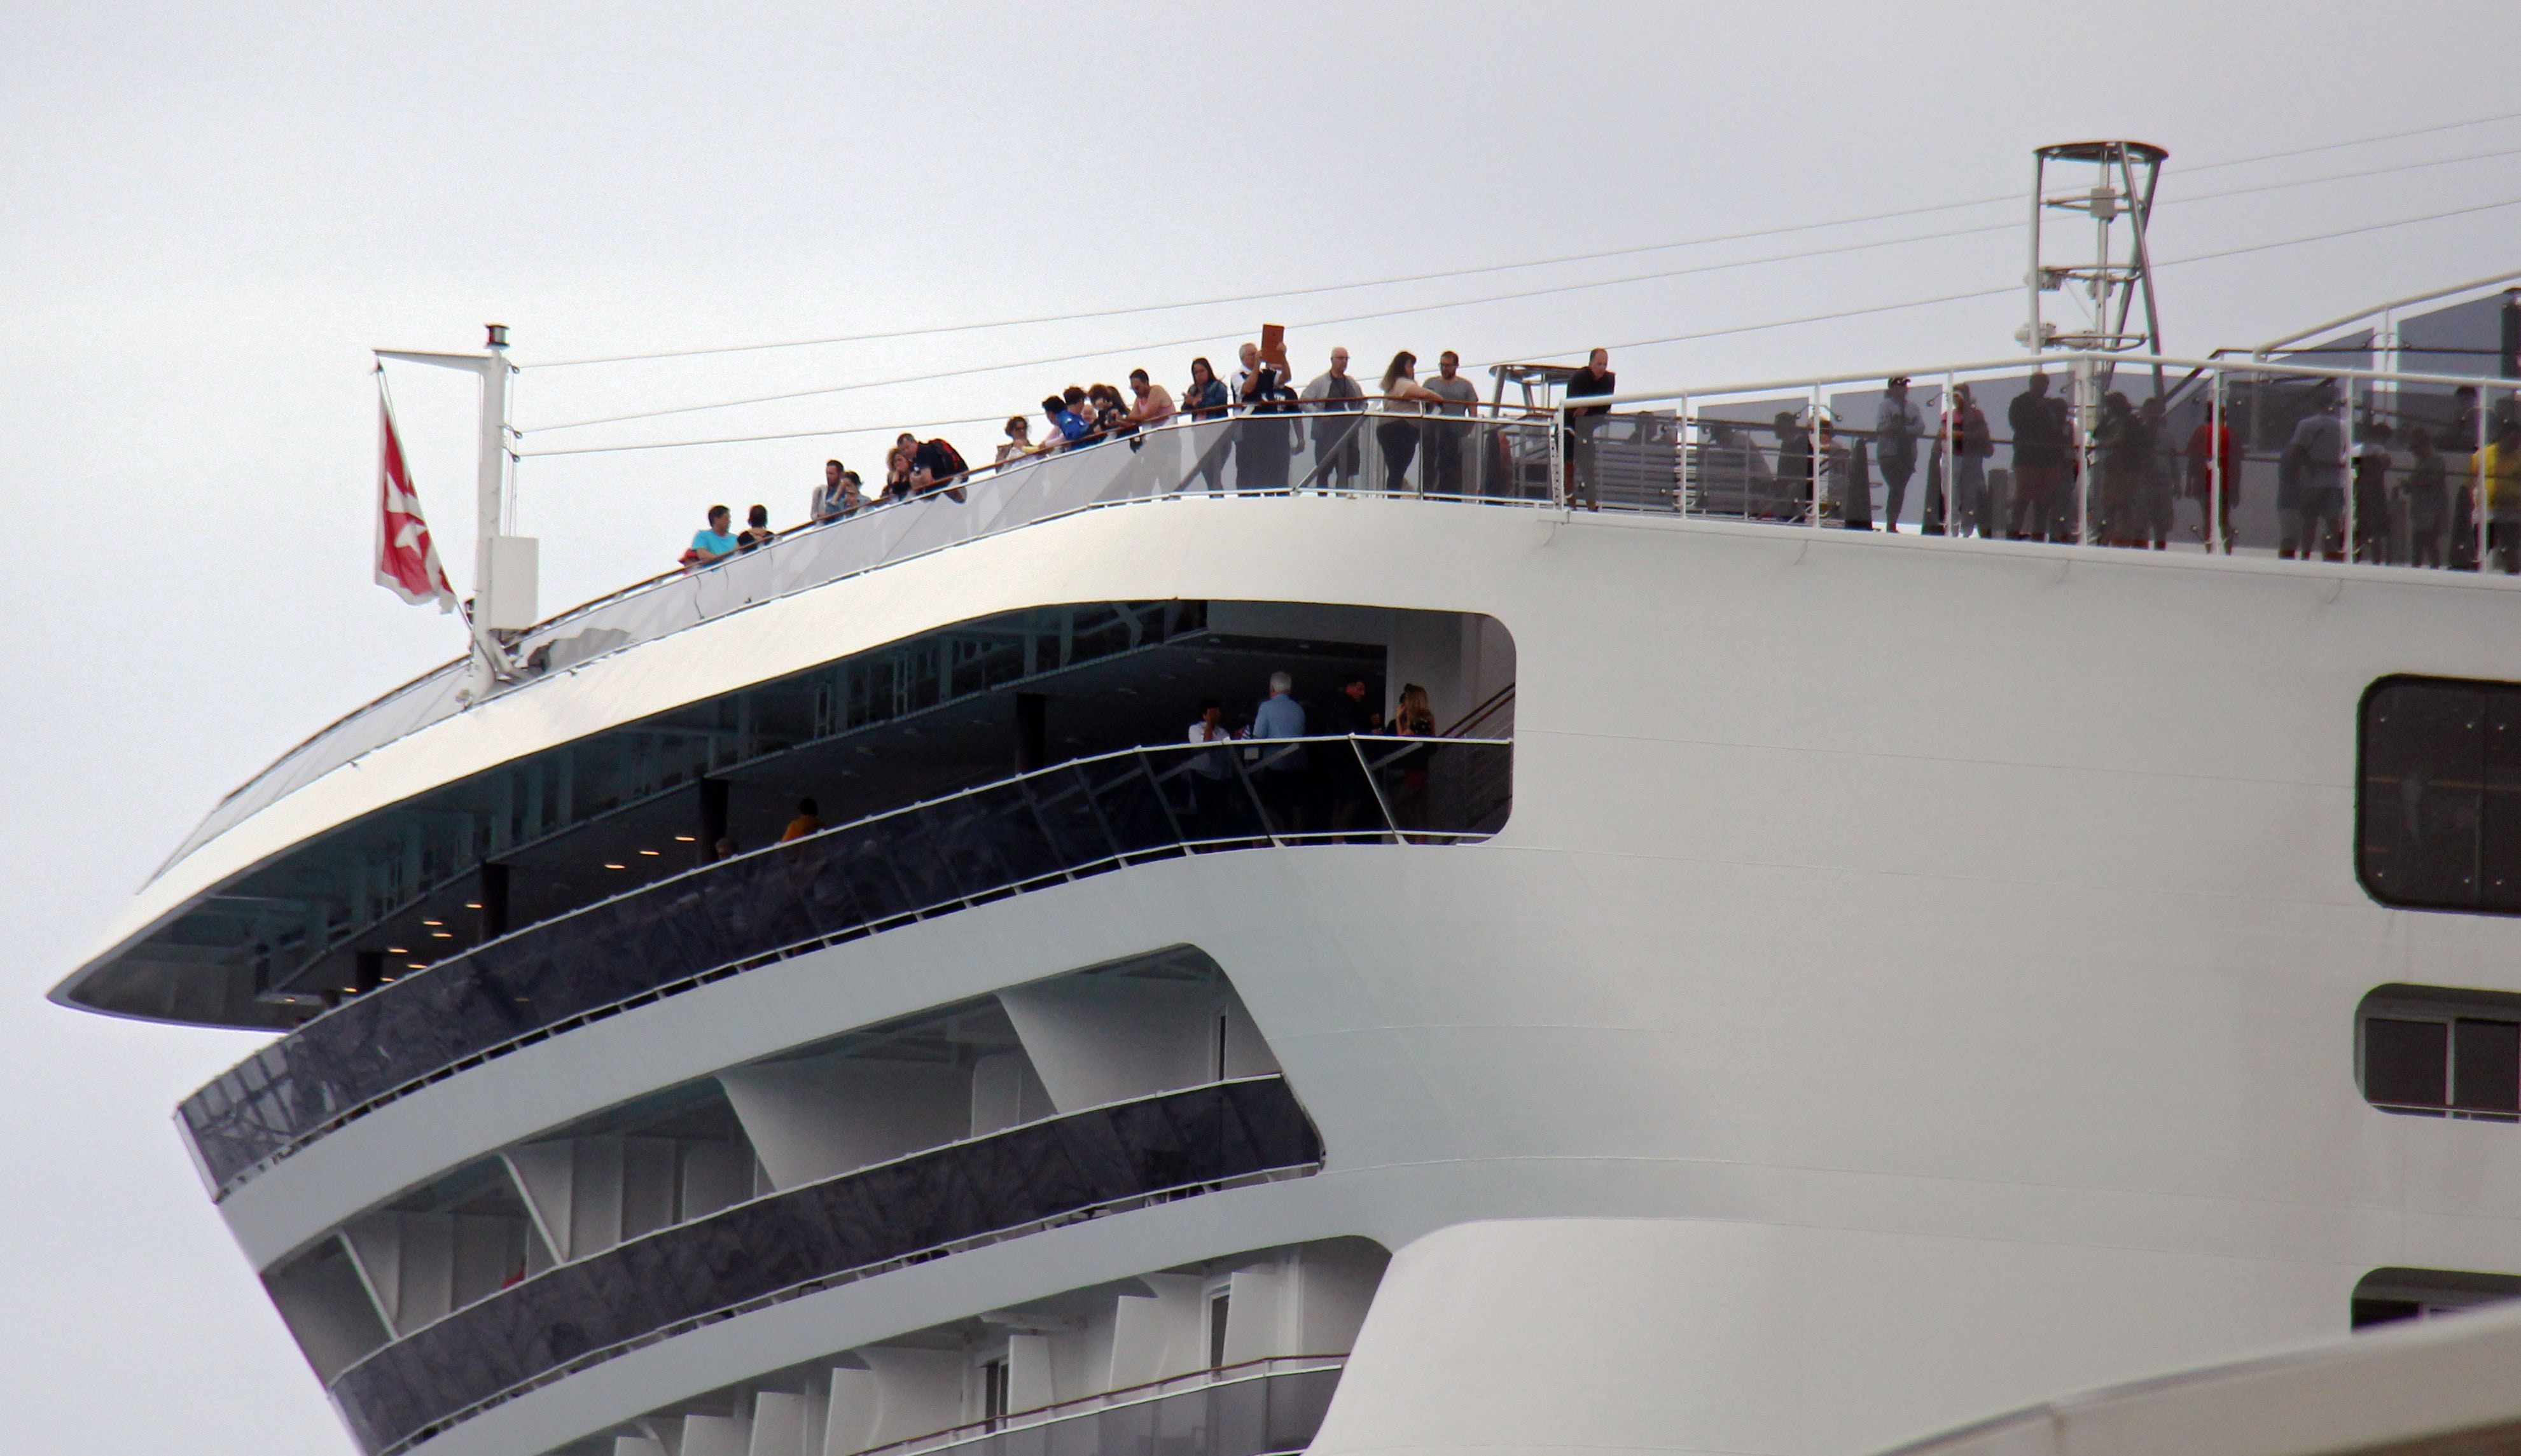 Passengers remain onboard the MSC Meraviglia cruise ship in Cozumel, Mexico, on February 27, 2020. - A cruise carrying 6,000 people which was turned away by Jamaica and the Cayman Islands after a crew member tested positive for flu has docked in Mexico. (Photo by JOSE CASTILLO / AFP) (Photo by JOSE CASTILLO/AFP via Getty Images)